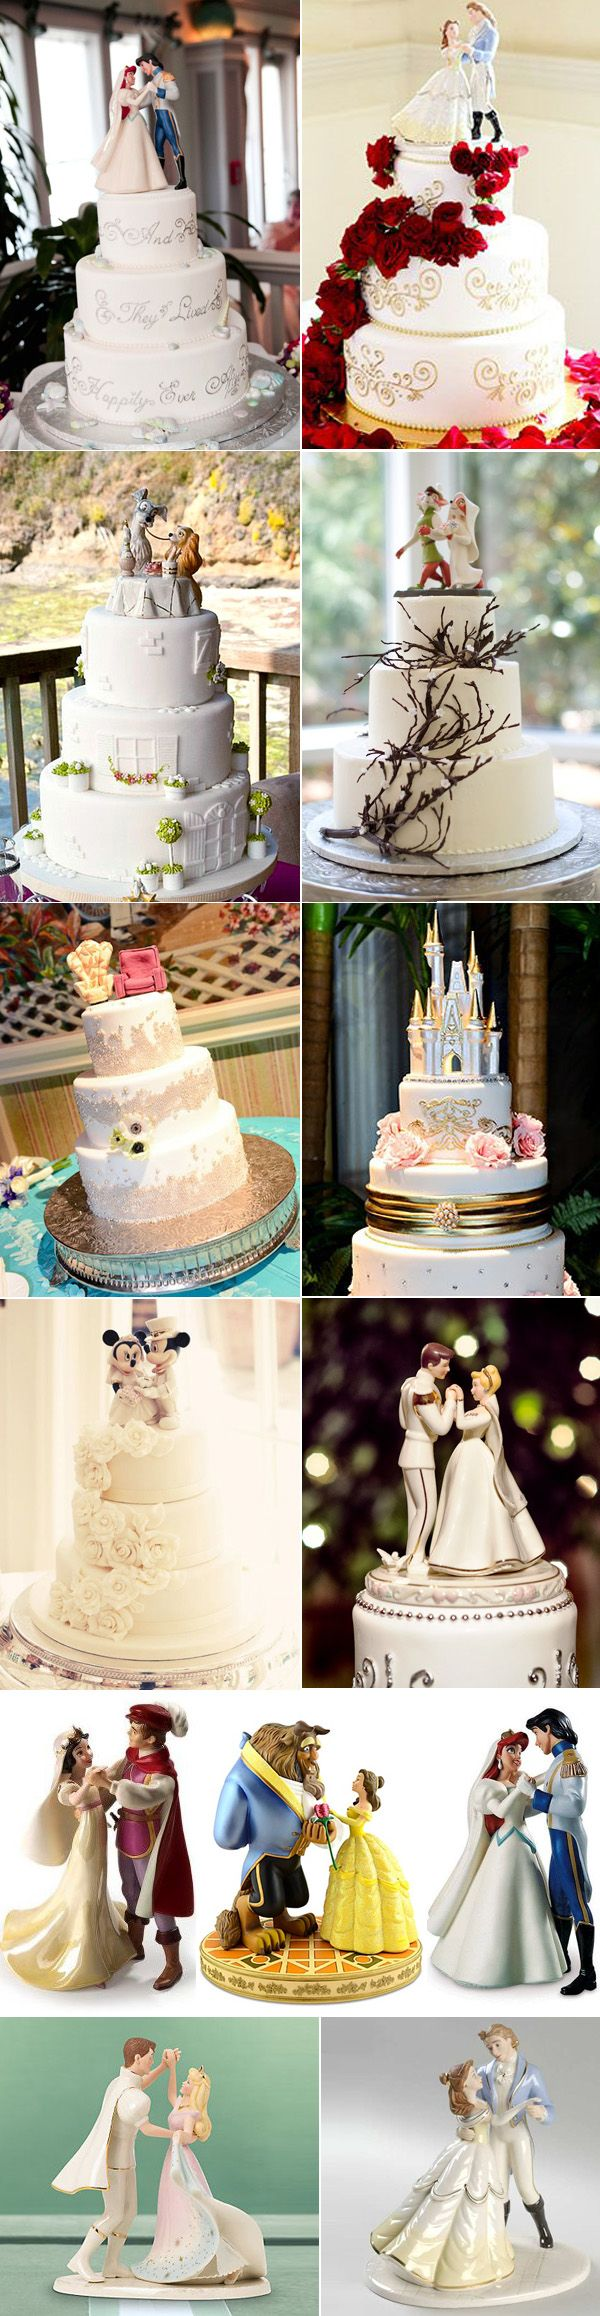 Best Disney Wedding Cake Toppers Ideas On Pinterest Disney - 16 hilariously creative wedding cake toppers